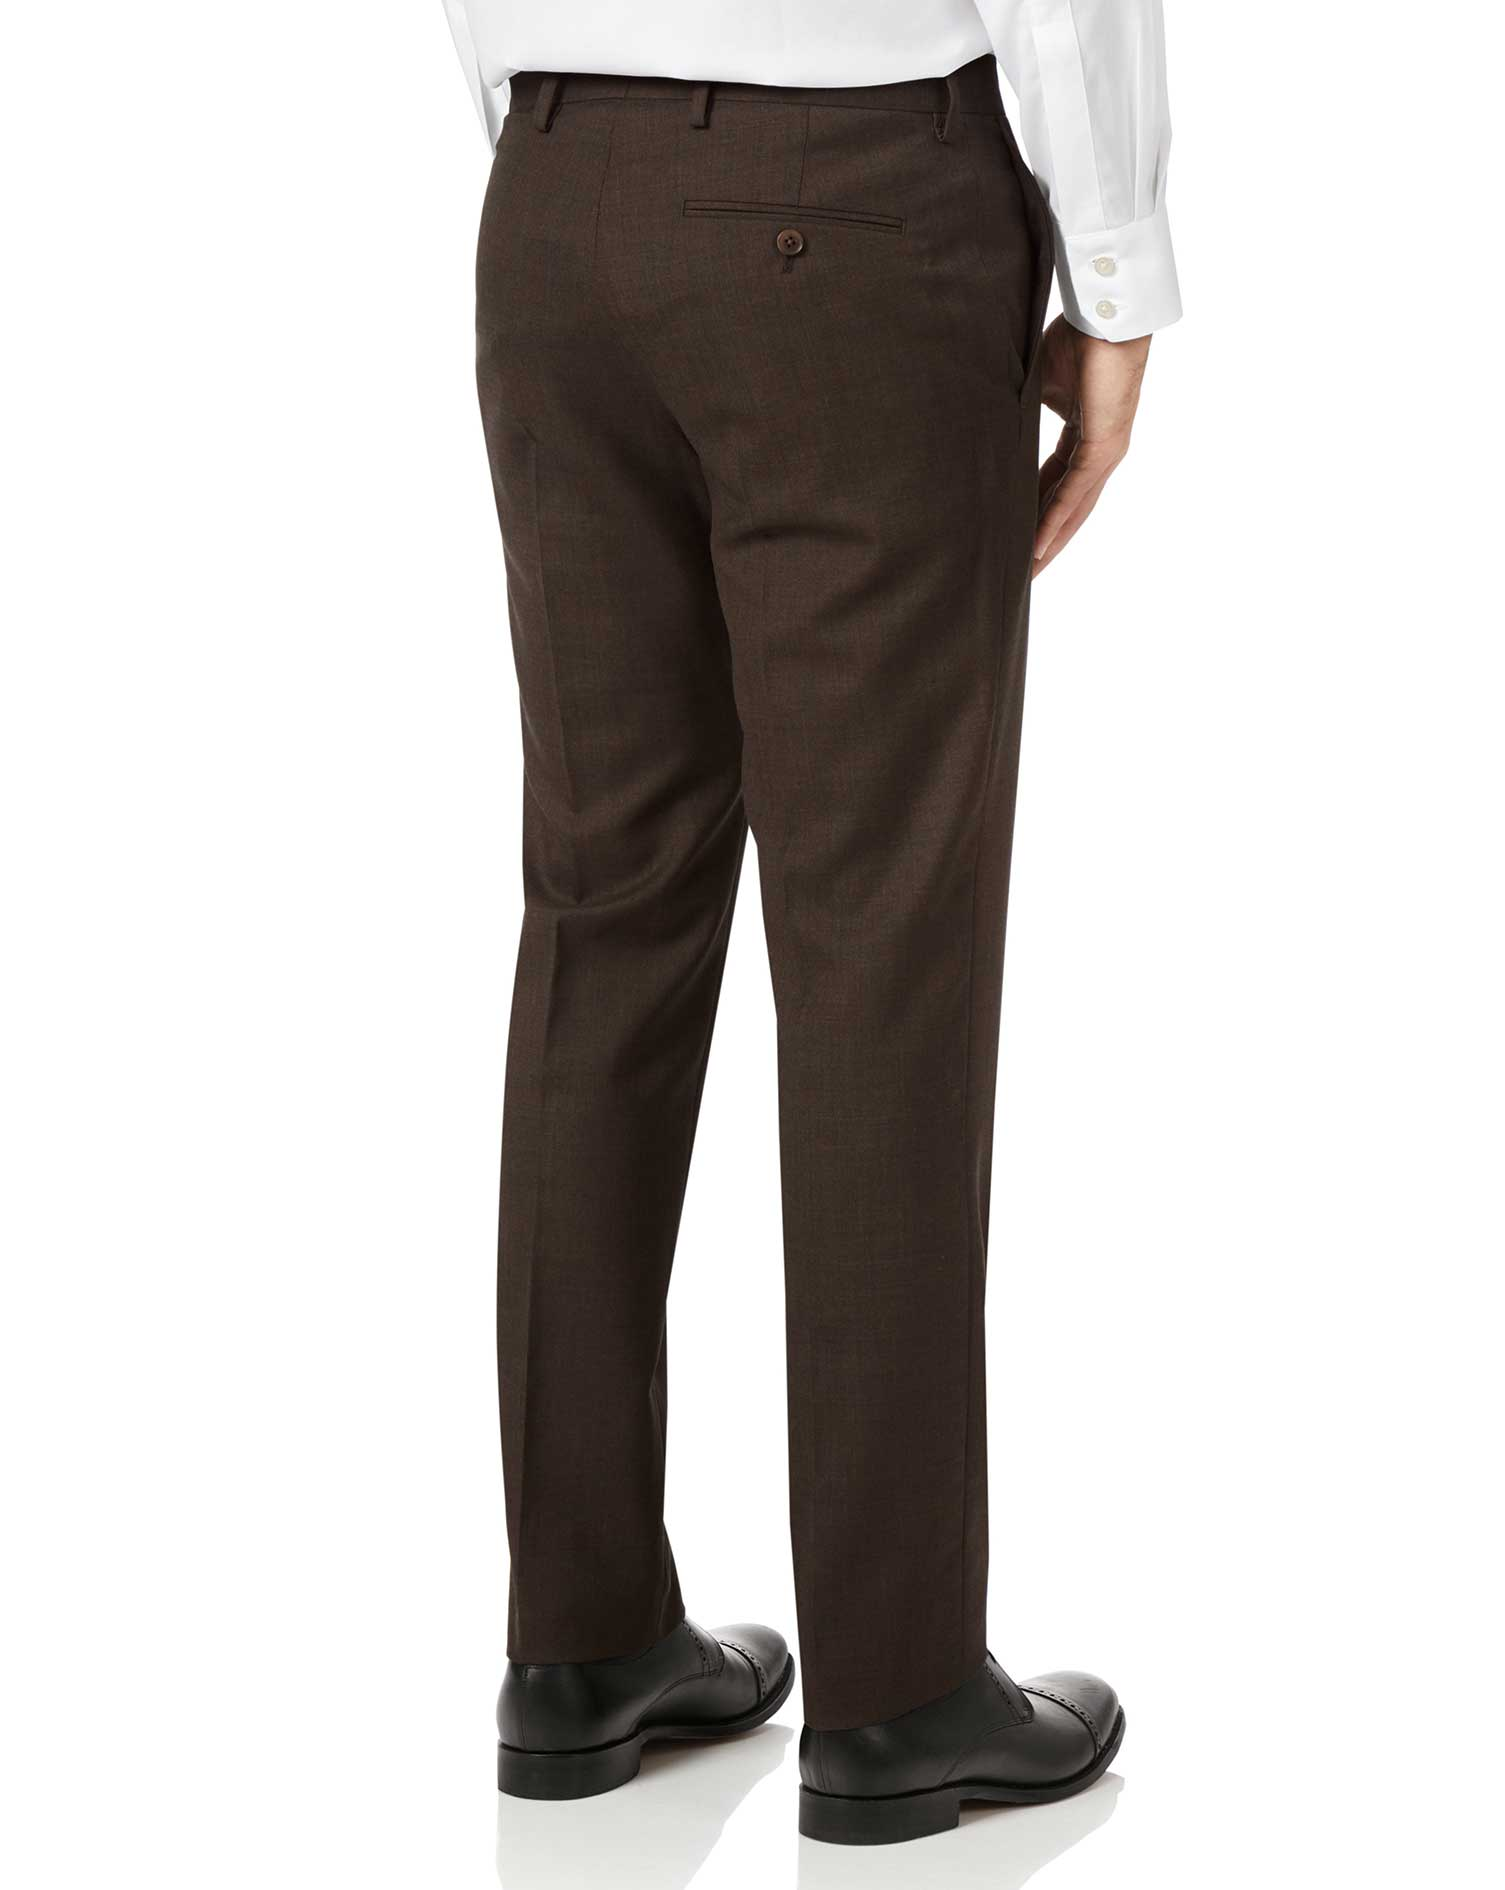 Chocolate slim fit sharkskin travel suit trousers